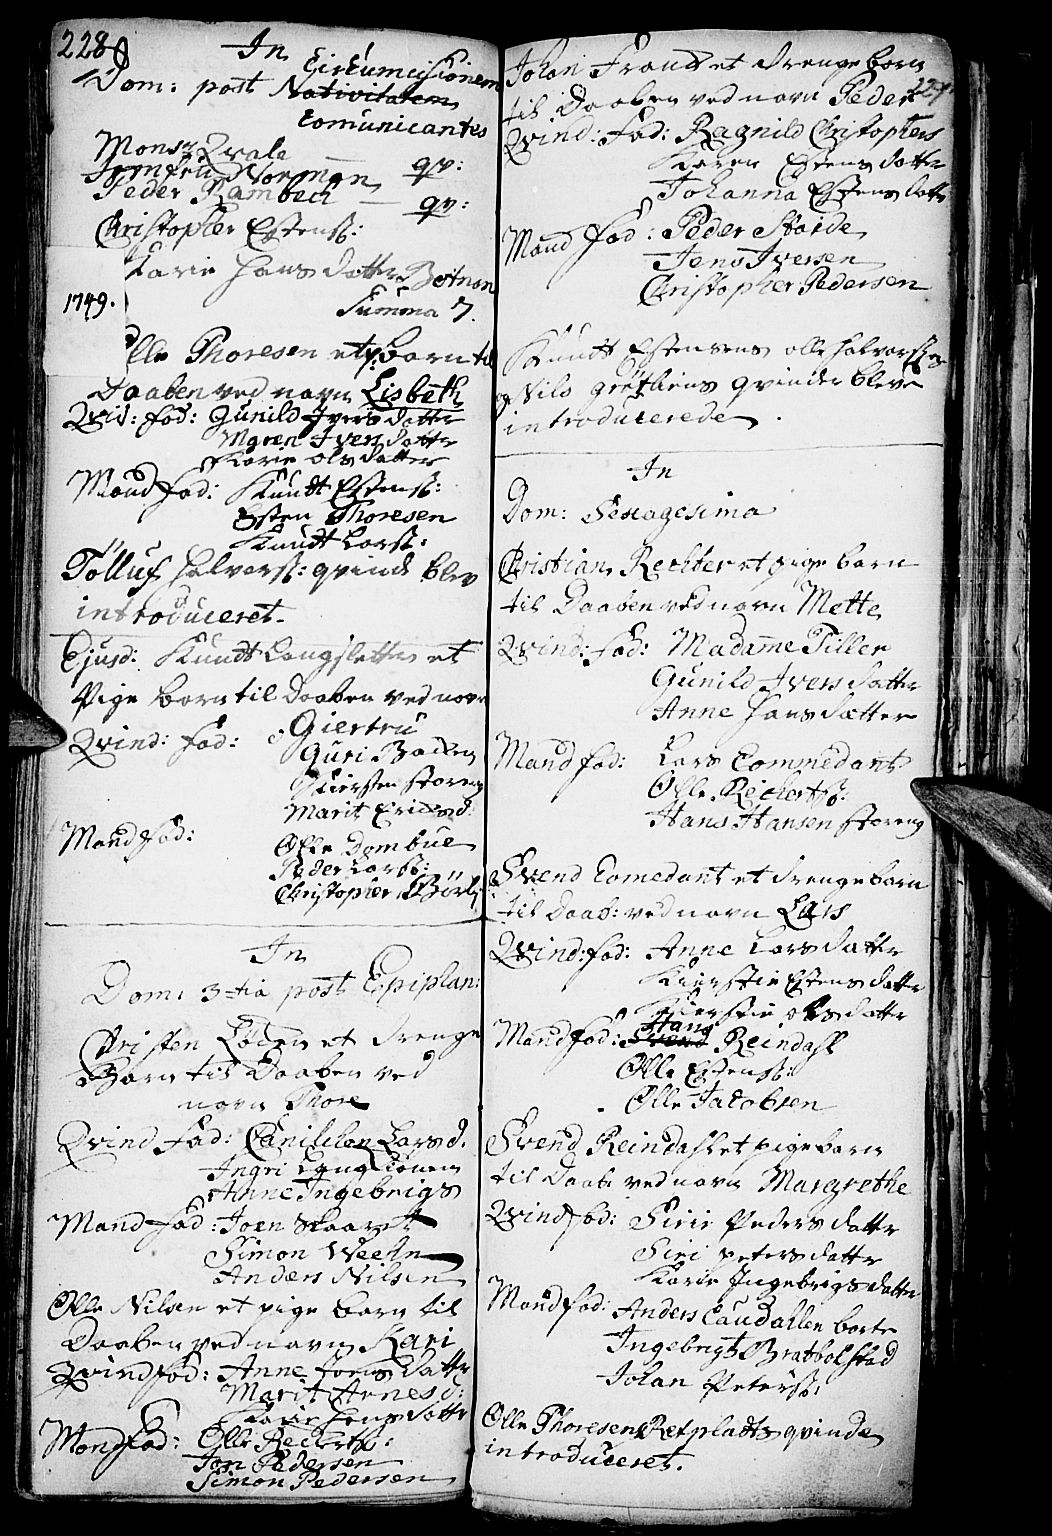 SAH, Kvikne prestekontor, Parish register (official) no. 1, 1740-1756, p. 228-229